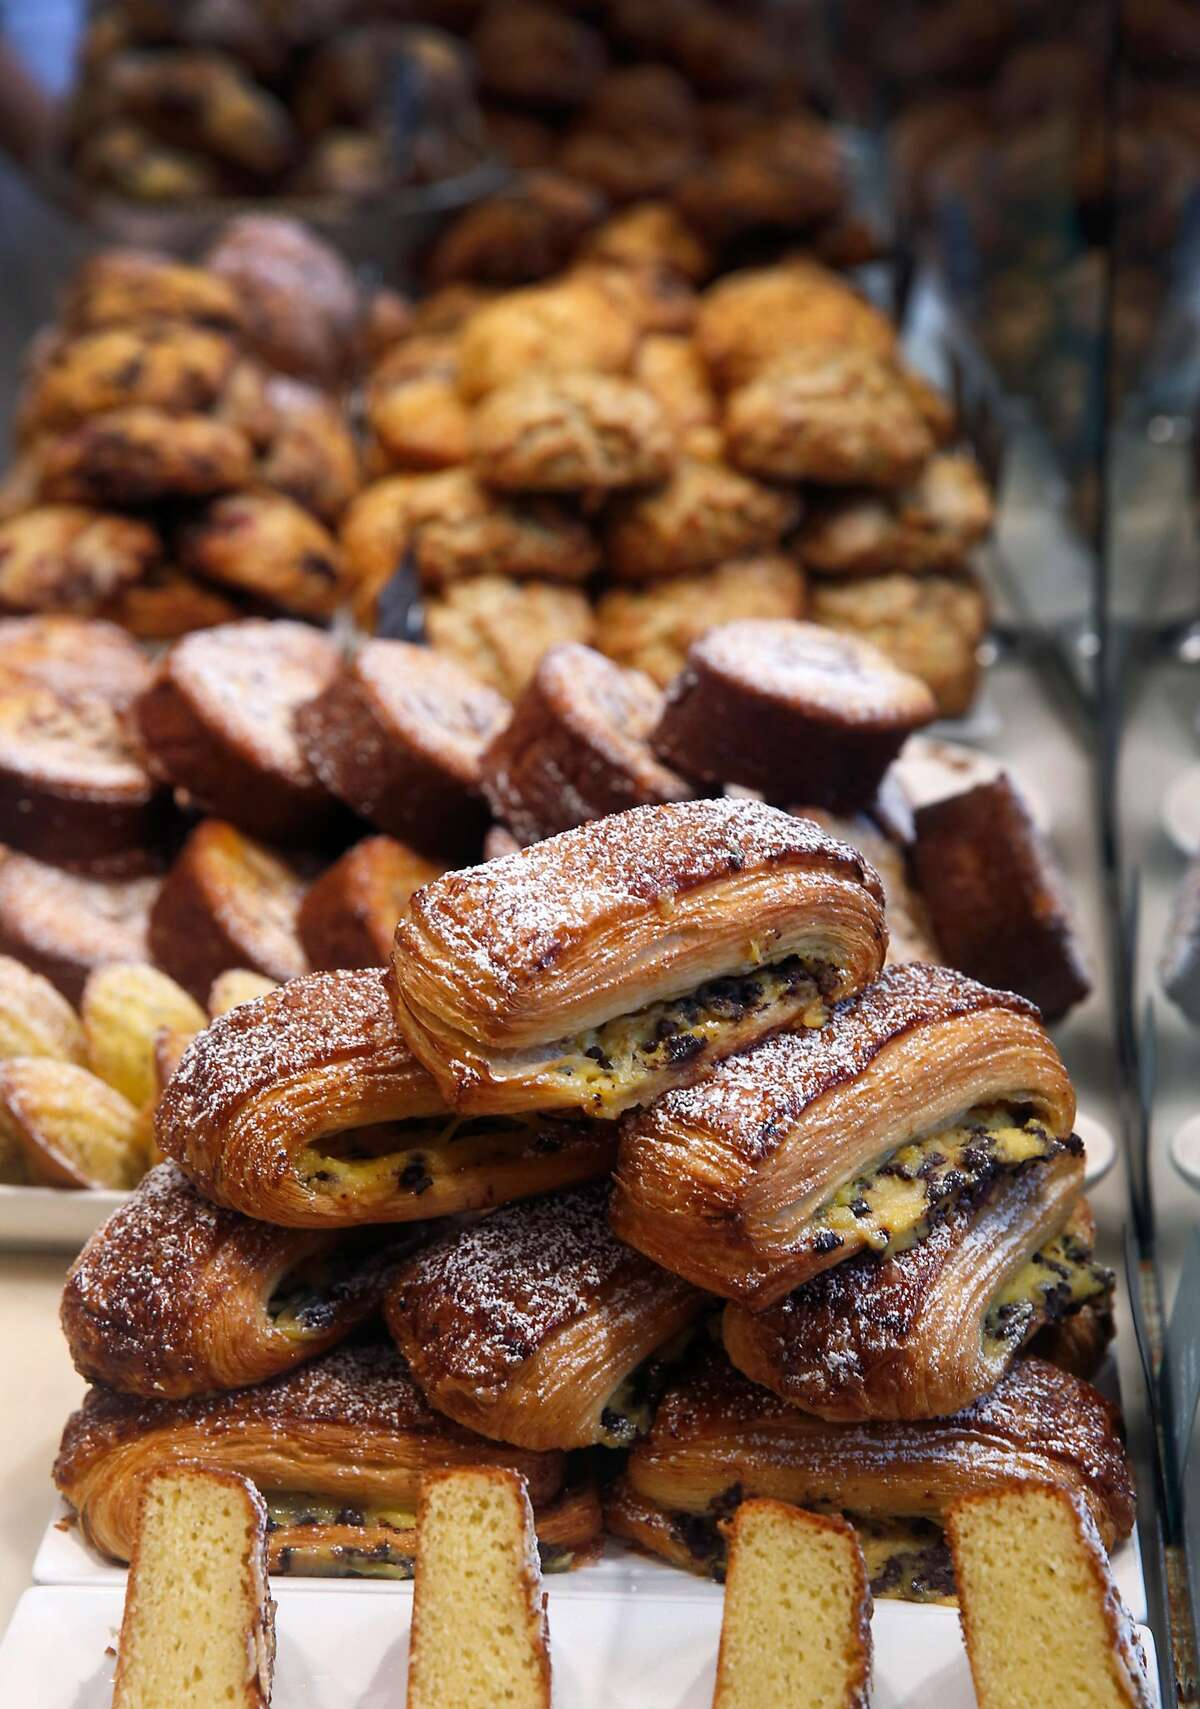 In this file photo, Fresh pastries are displayed at b. Patisserie on California Street in San Francisco. The bakery is one of several participating in a bake sale benefiting local children.